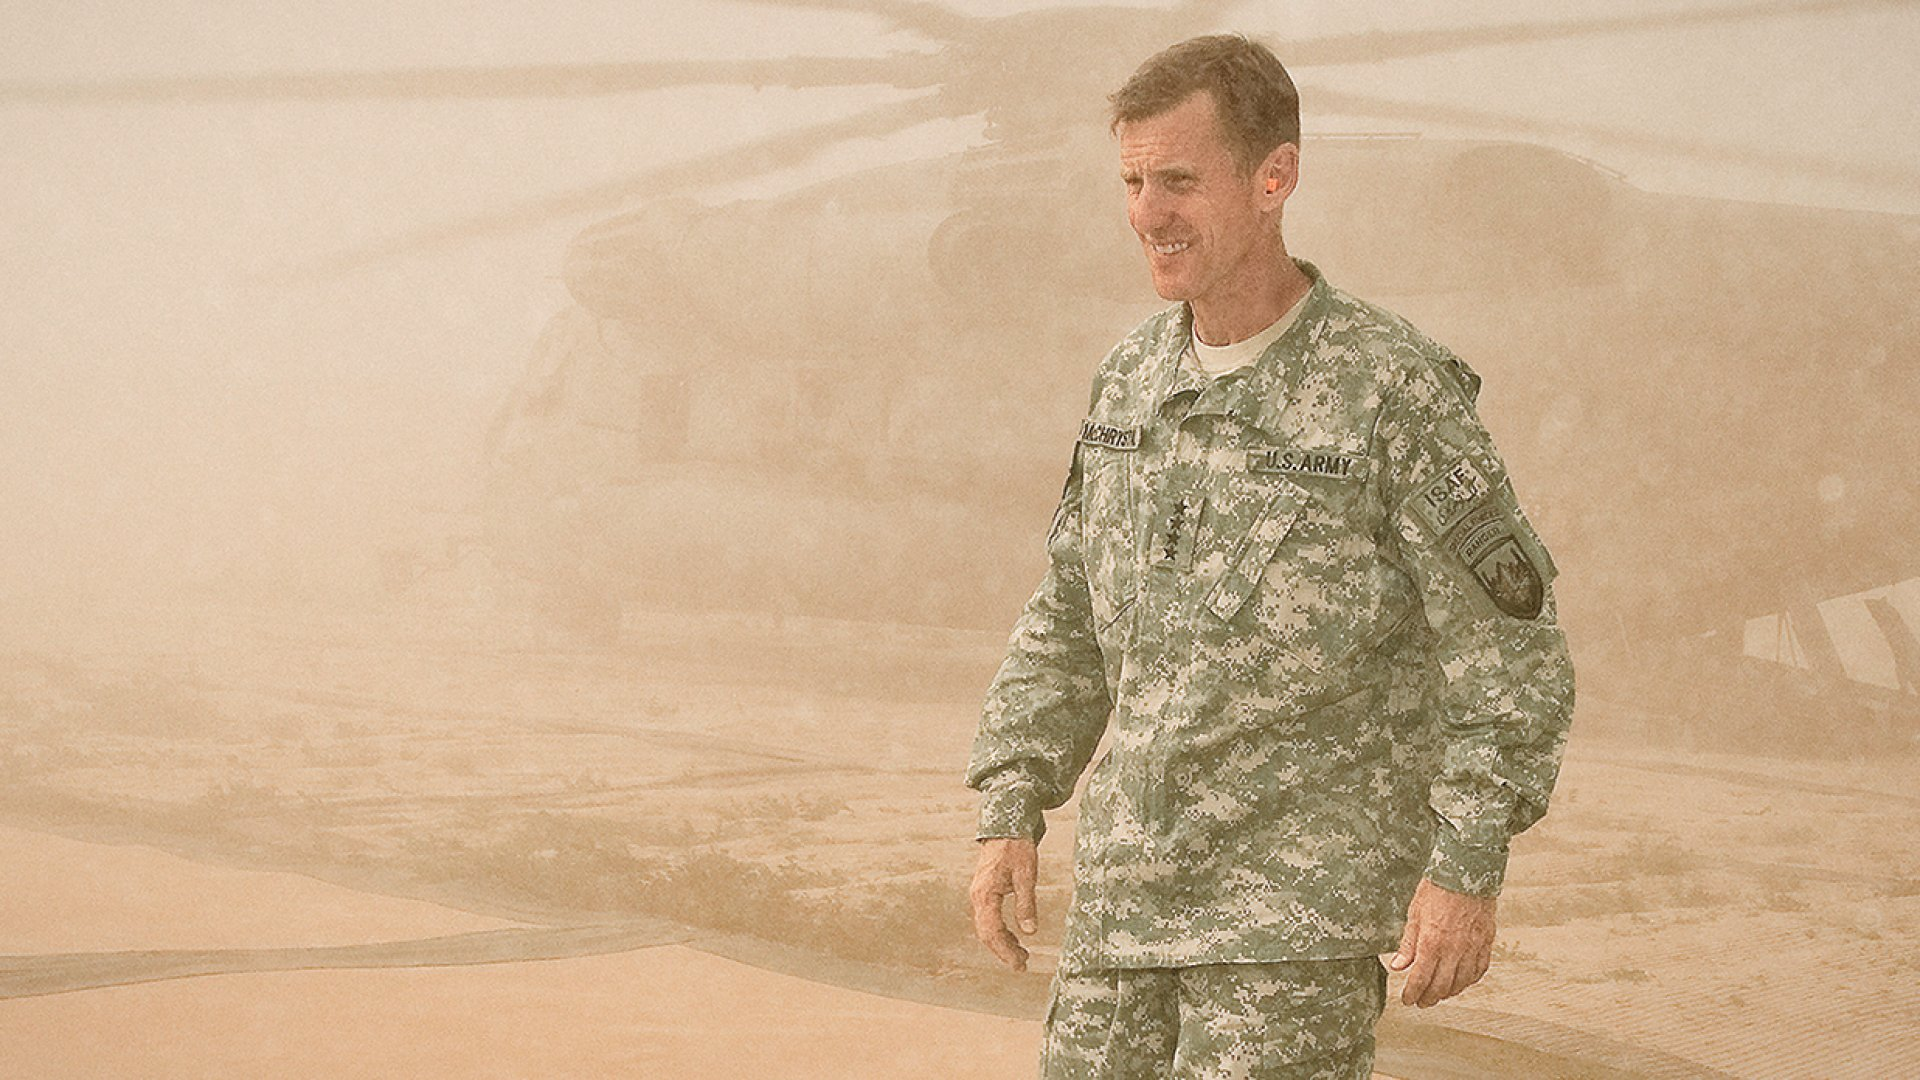 Sand and dust envelope McChrystal at Combat Outpost Sharp in the Garmsir District of Afghanistan, April 2010.